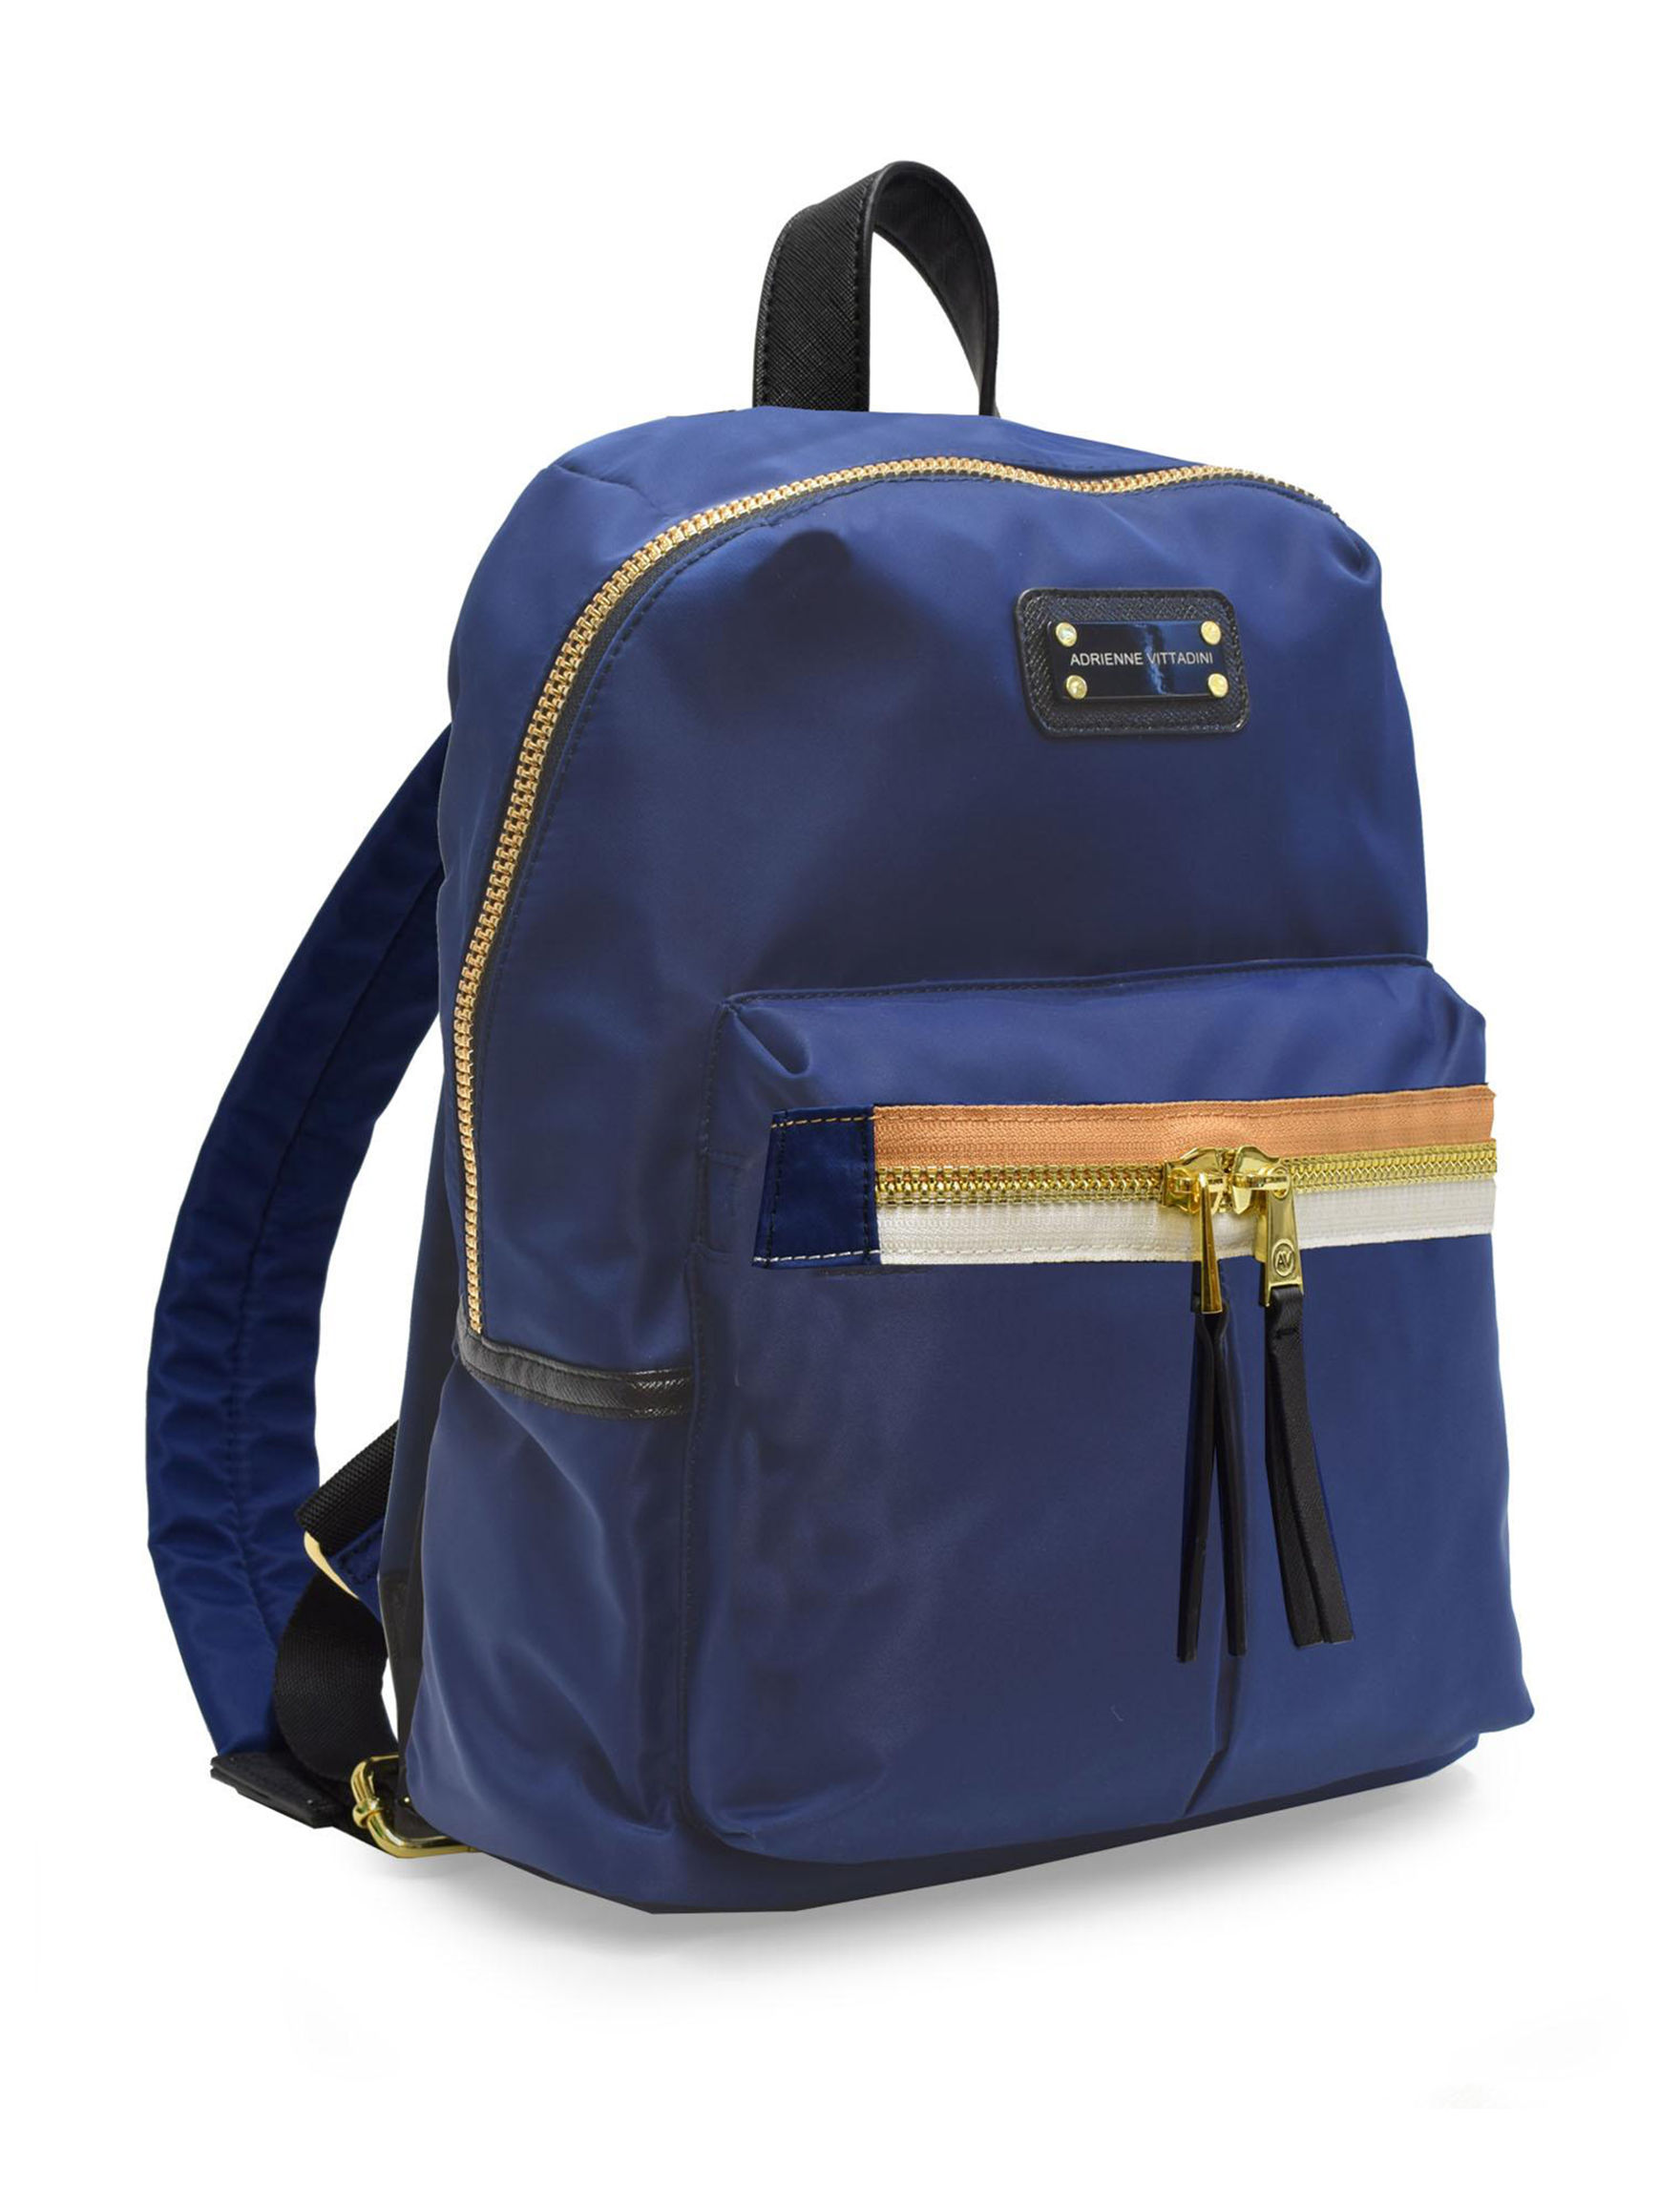 Adrienne Vittadini Navy Bookbags & Backpacks